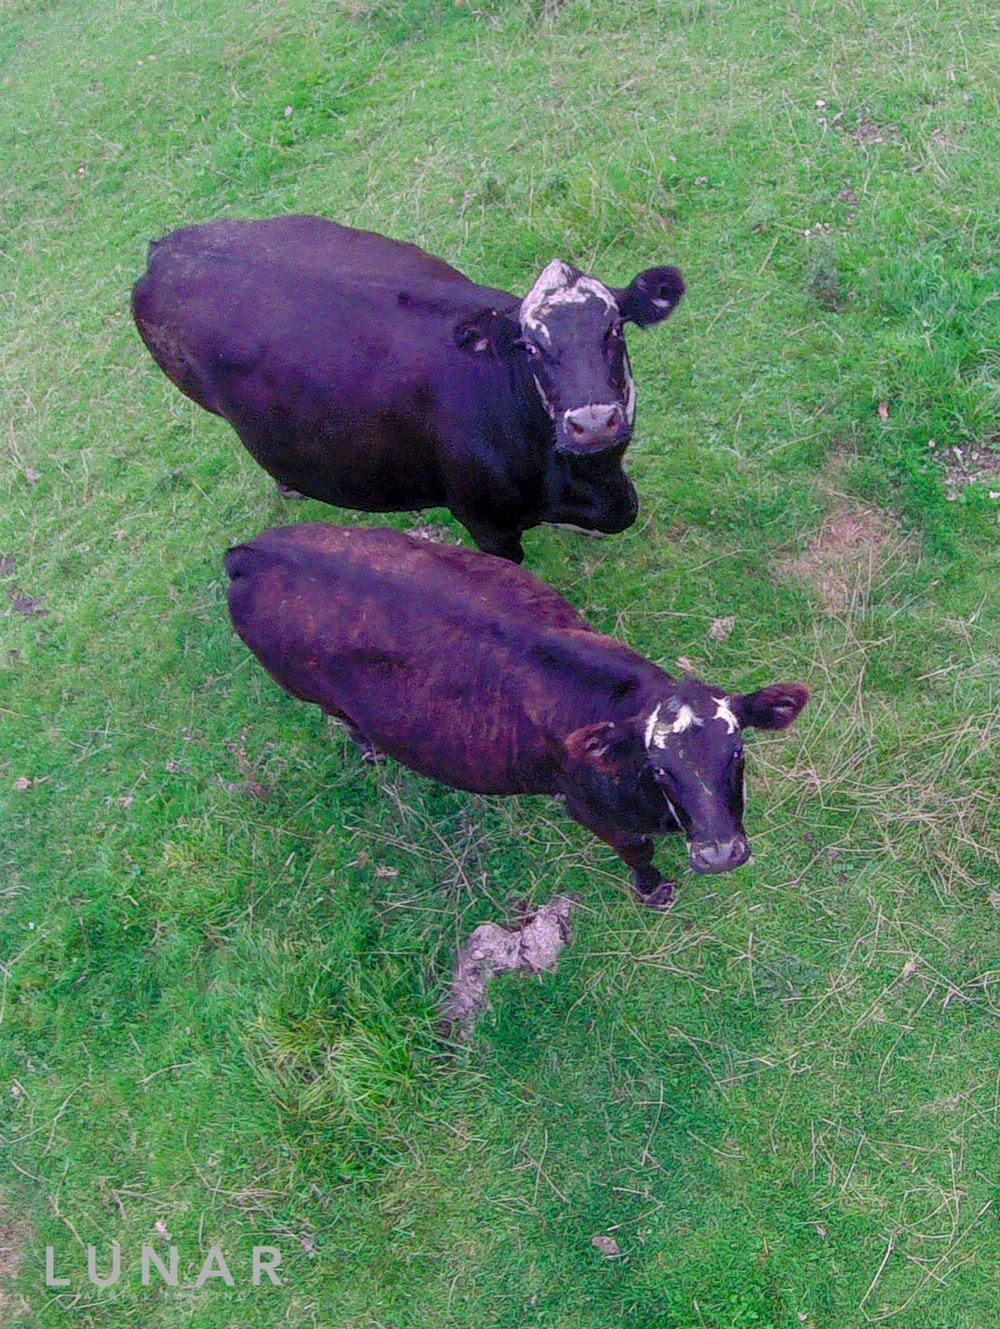 Cows meet drone, Cheshire, LUNAR Aerial Imaging